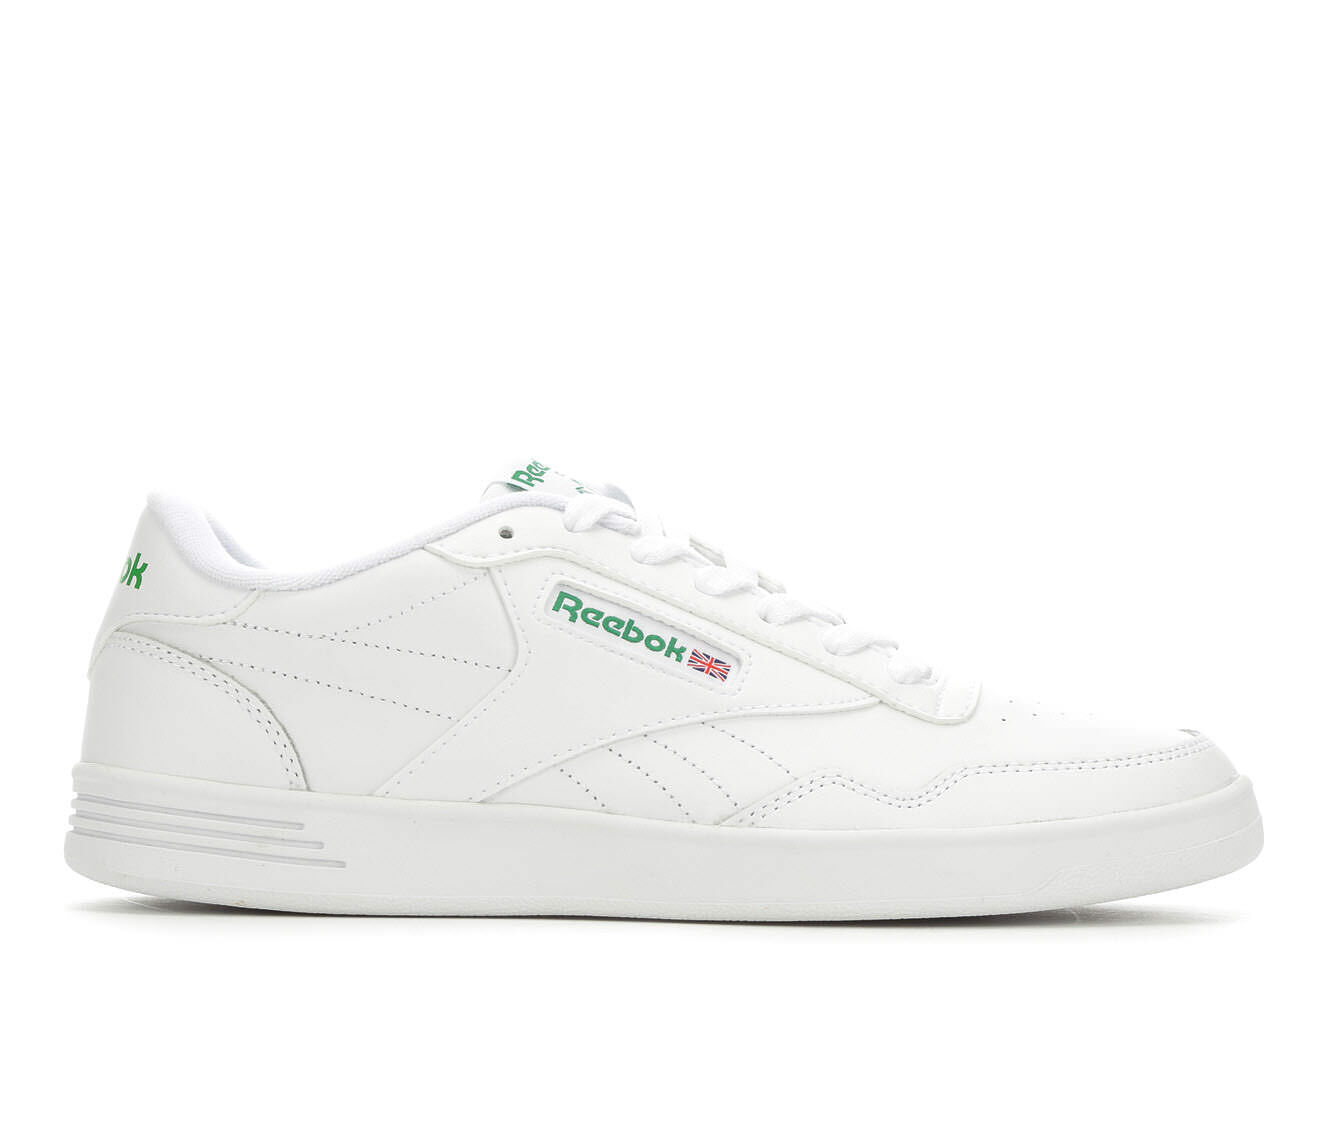 Men's Reebok Club MEMT Tennis Shoes White/Green